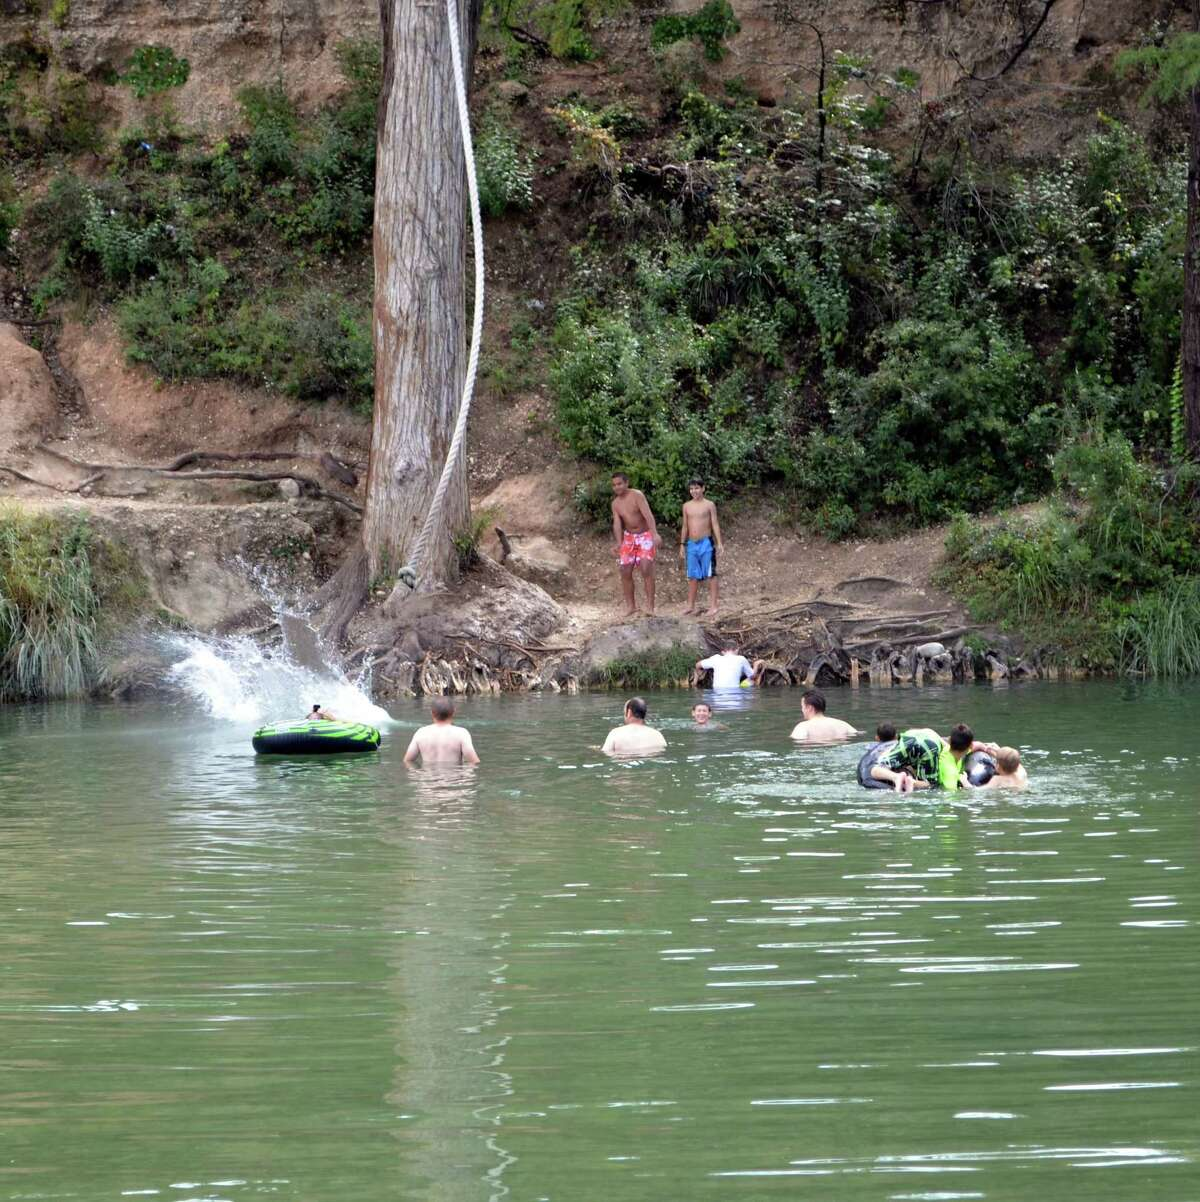 While being able to take a cool plunge into the Frio River is one of the main attractions at Garner State Park, many families are also participating in the Junior Ranger program to educate children about the wonders of the outdoor world.